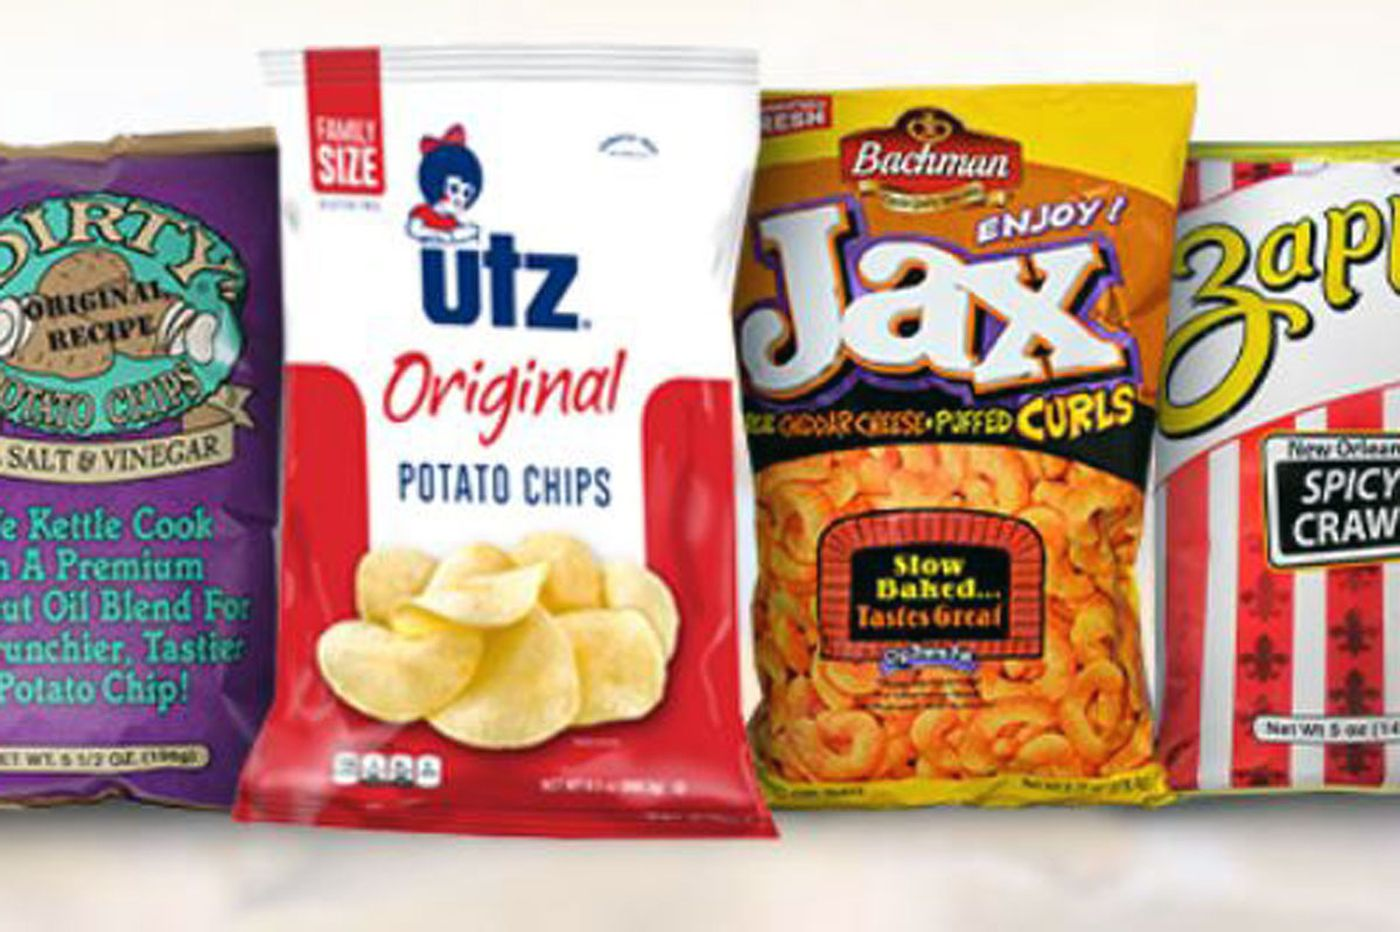 Utz, the family-owned Pa. snack food giant, will become a publicly traded company